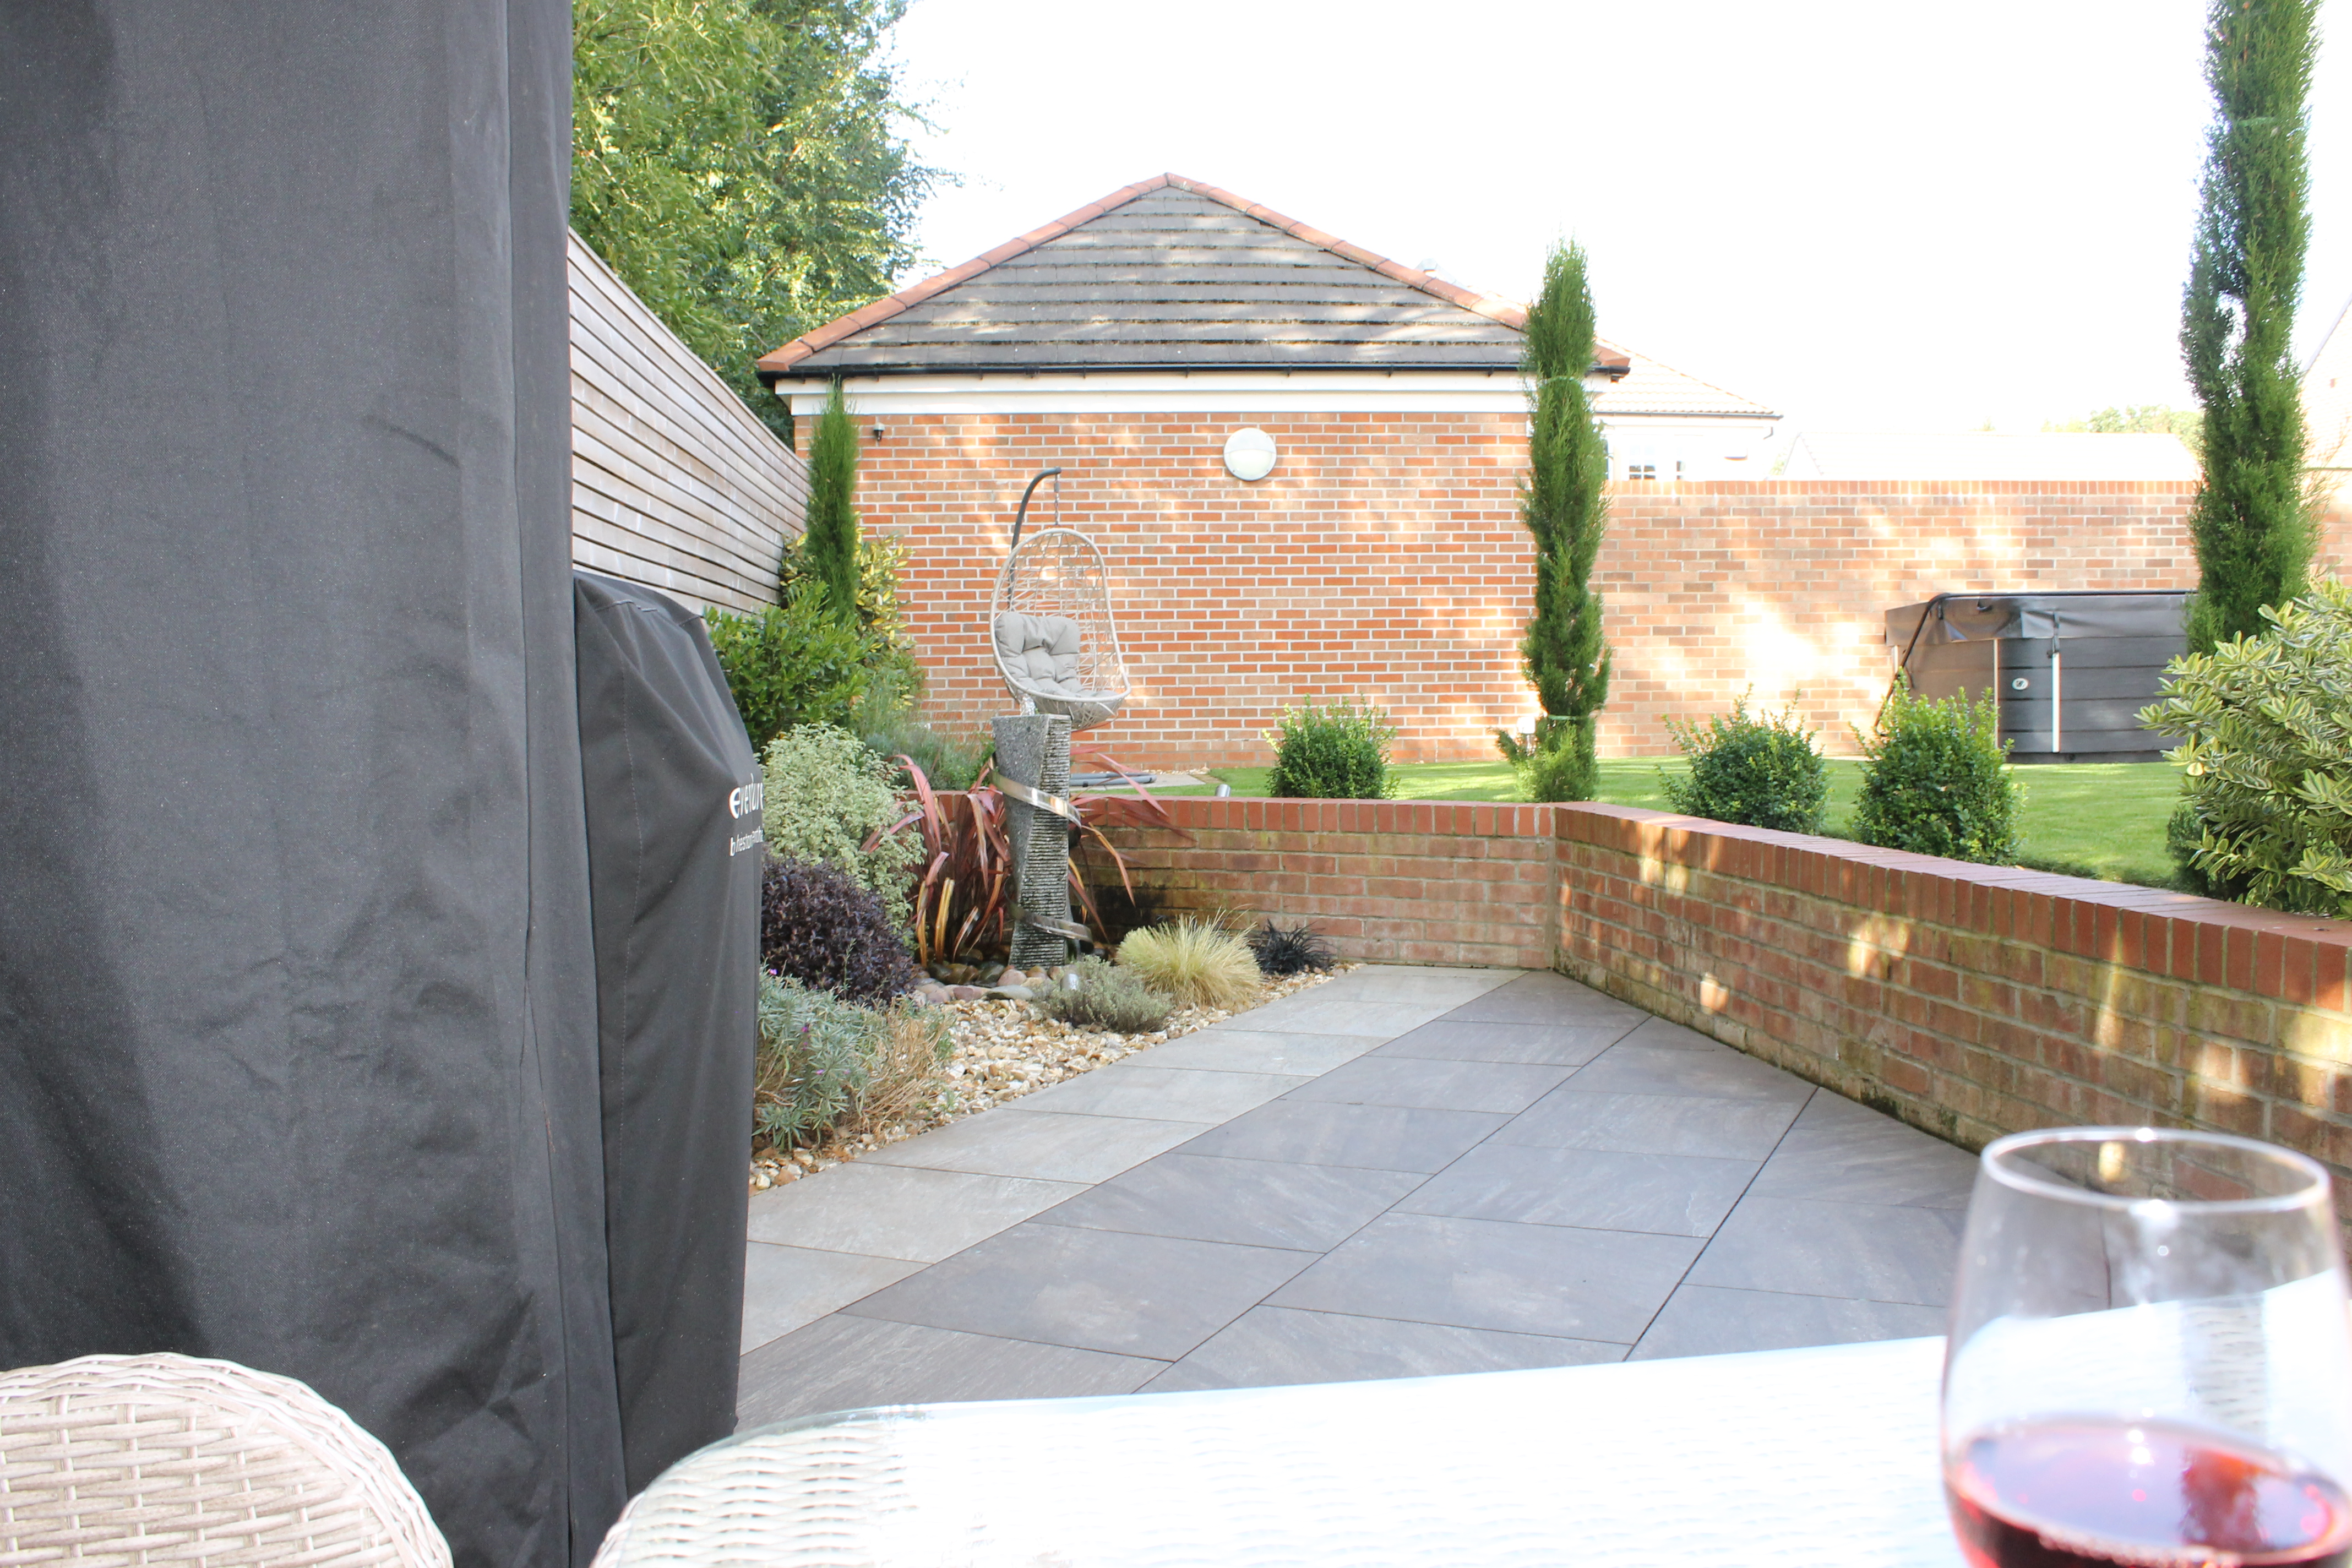 paved area in garden